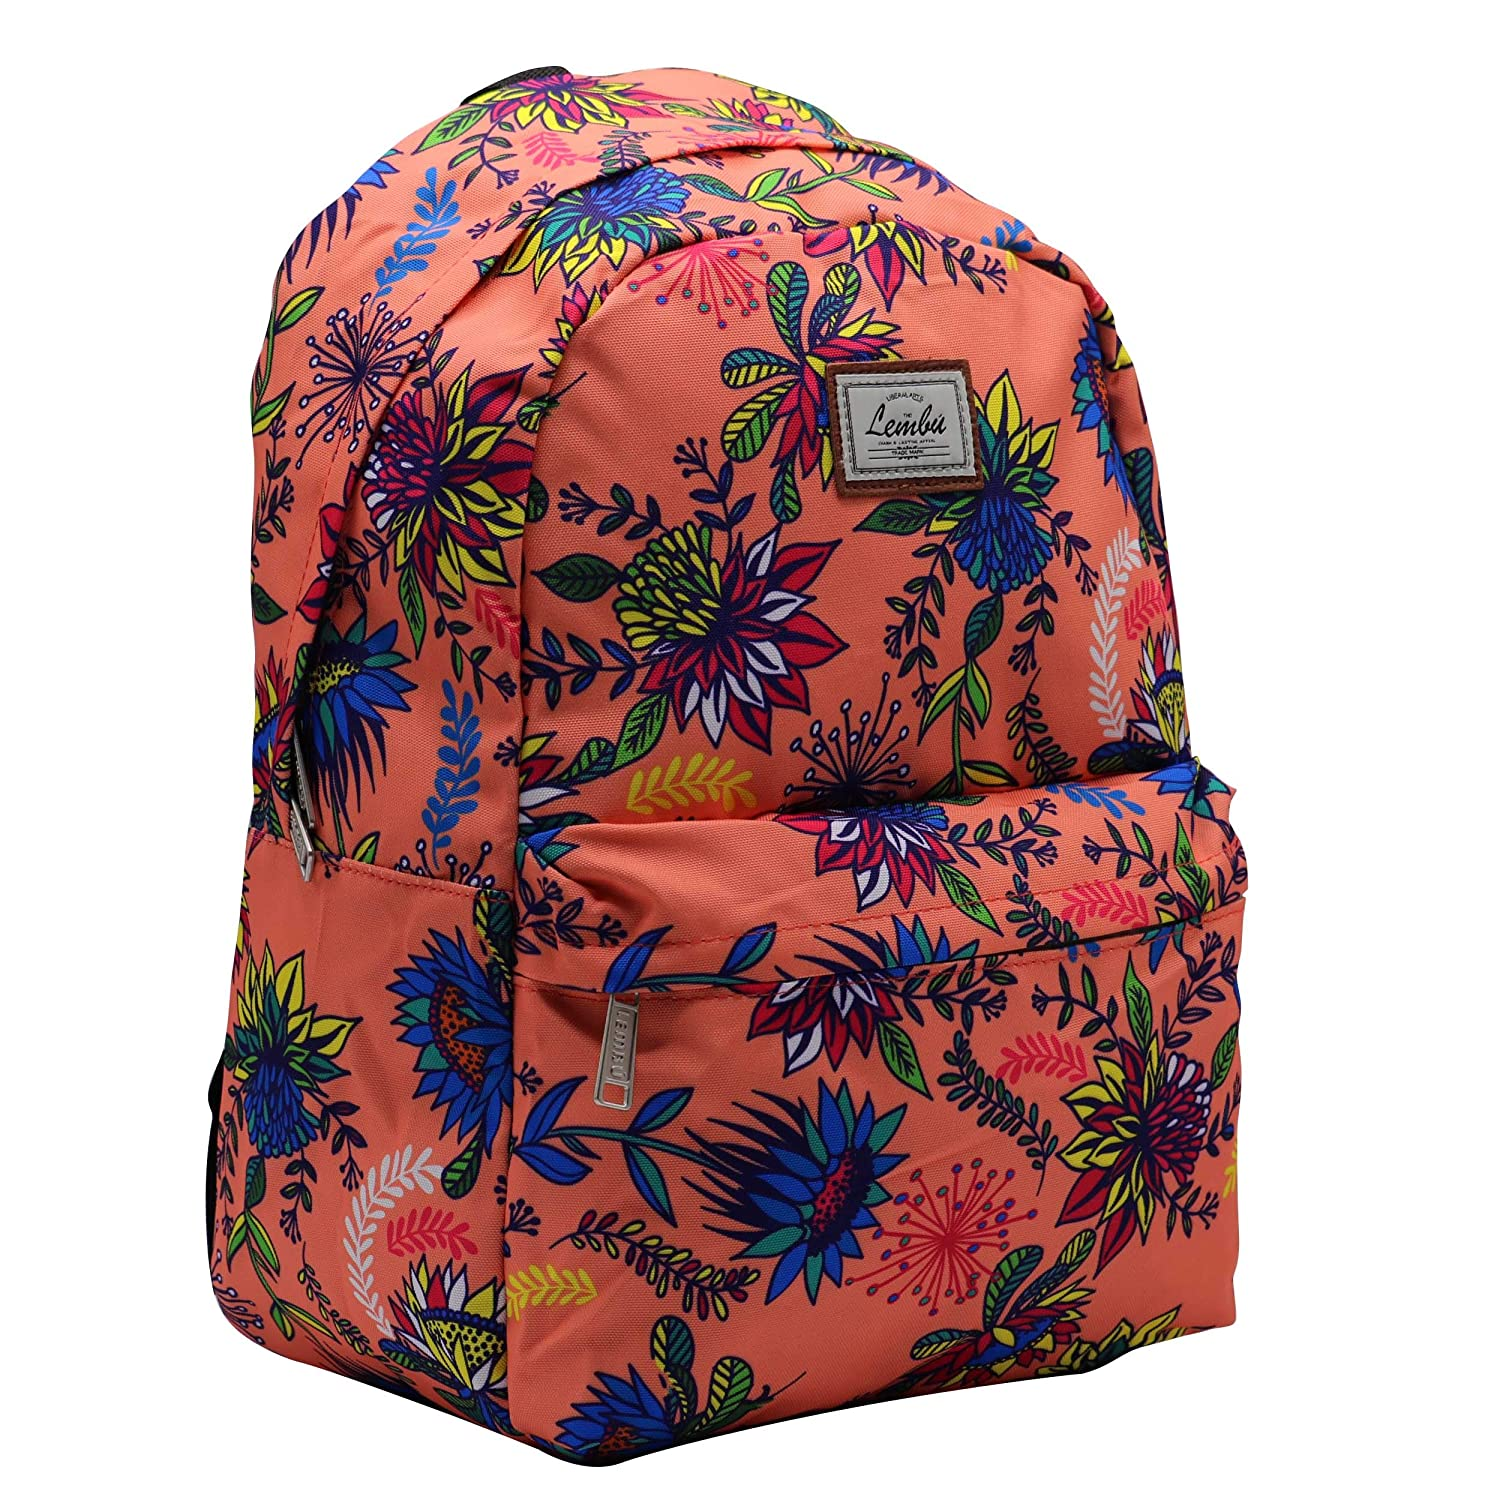 Tropical Lembu School Backpack Kids Bag Travel Back to School Men Women Unisex Lightweight Basic Simple Comfortable Fashion Bag